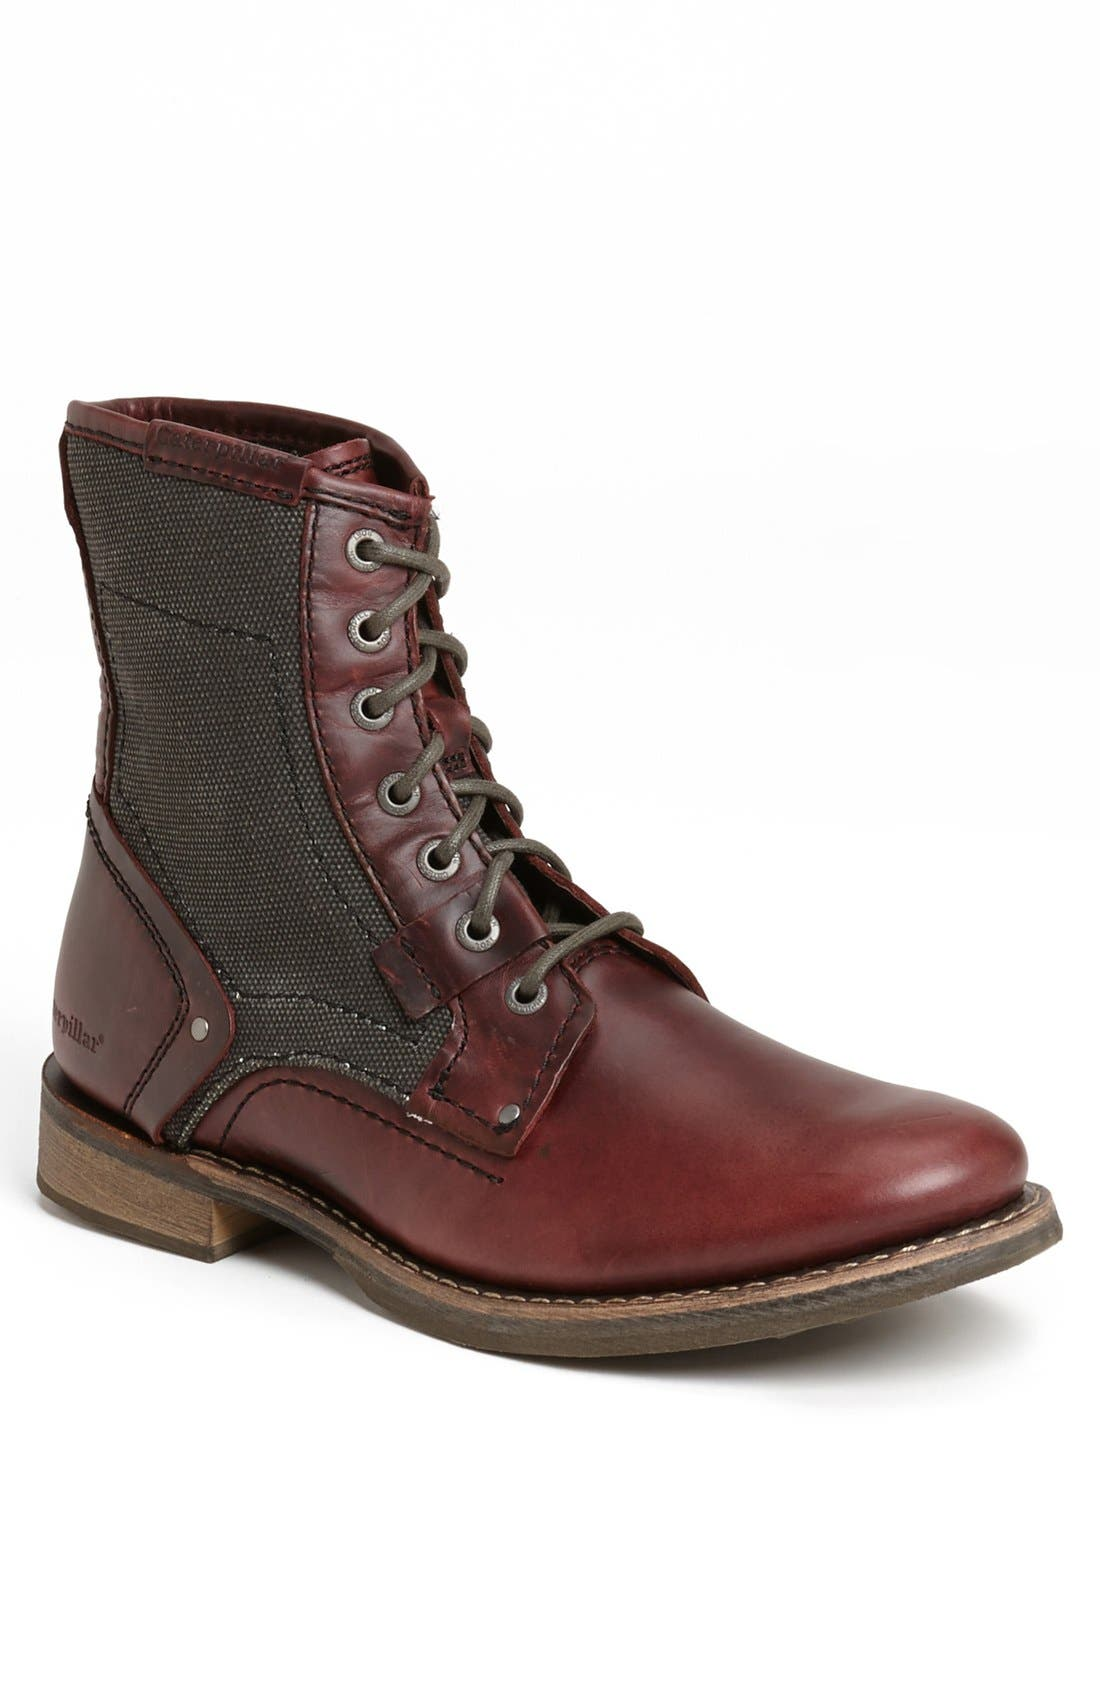 Alternate Image 1 Selected - Caterpillar 'Abe' Boot (Men)